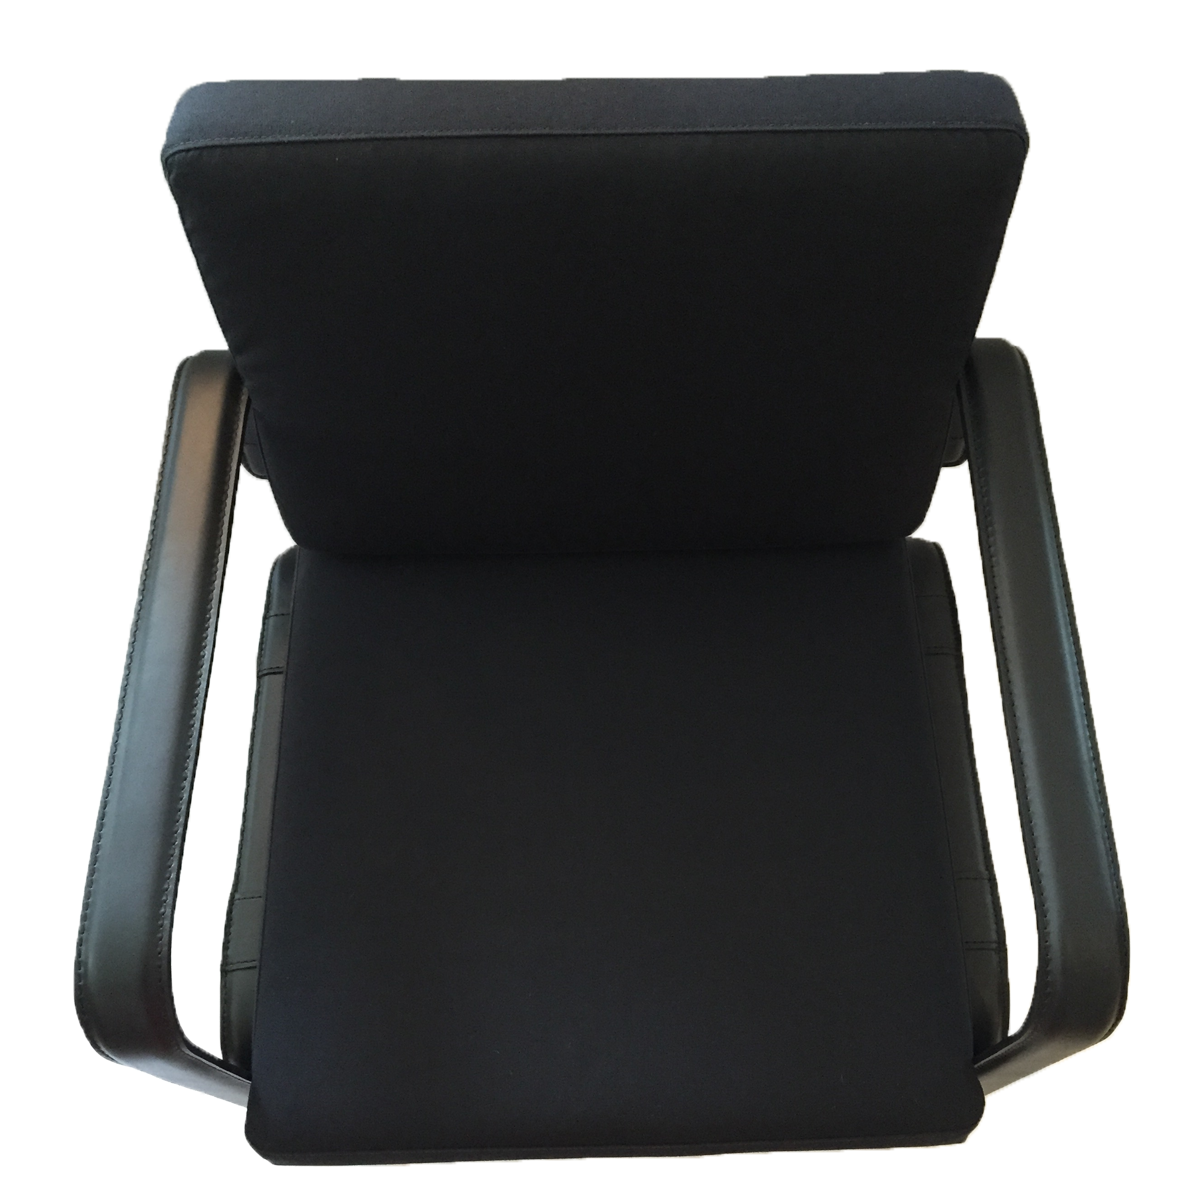 3d Rendering Top View Of Colorful Dental 3d Rendering Top View Of Colorful Dental Cosm Chairs Product Deta In 2020 Office Chair Office Chair Makeover Best Office Chair